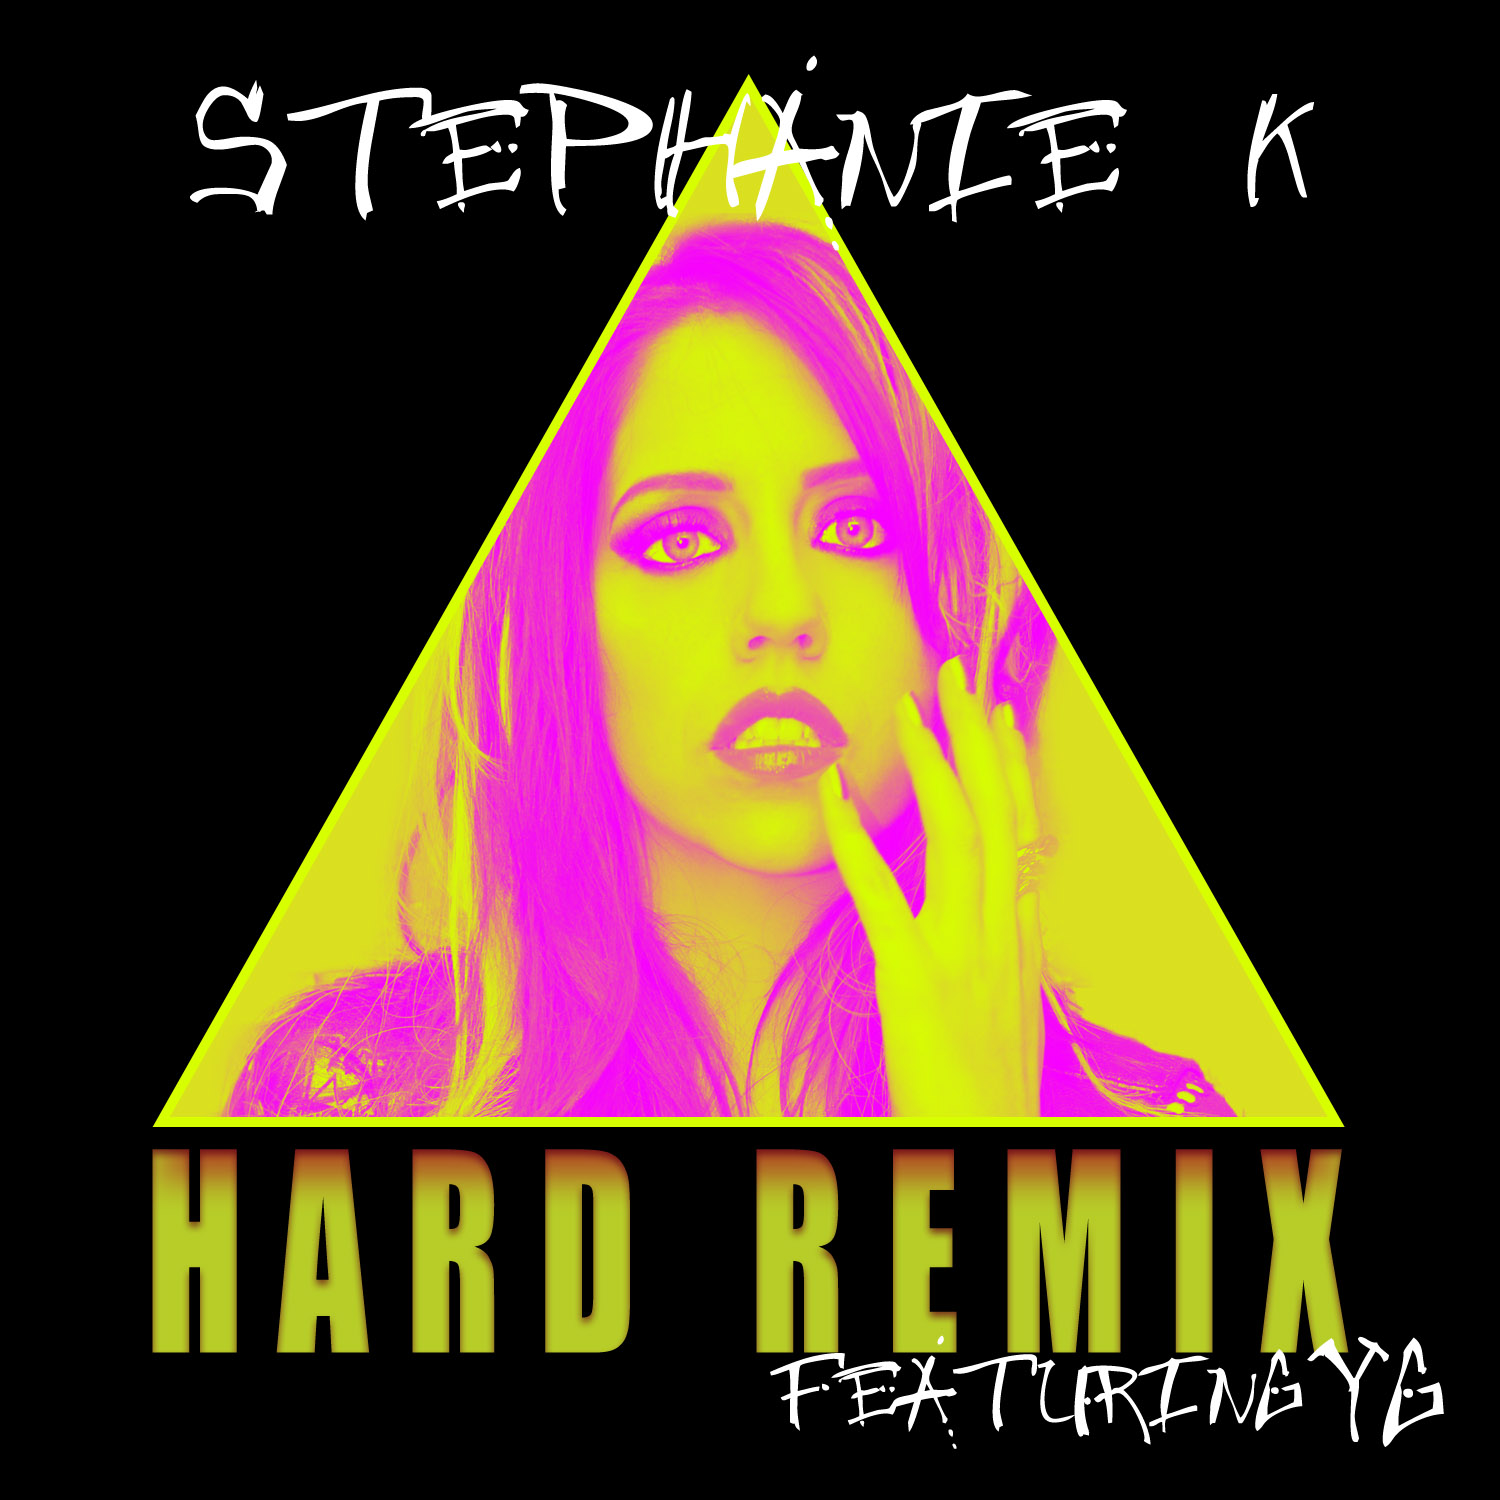 Hard (Remix) feat. YG out now on iTunes!